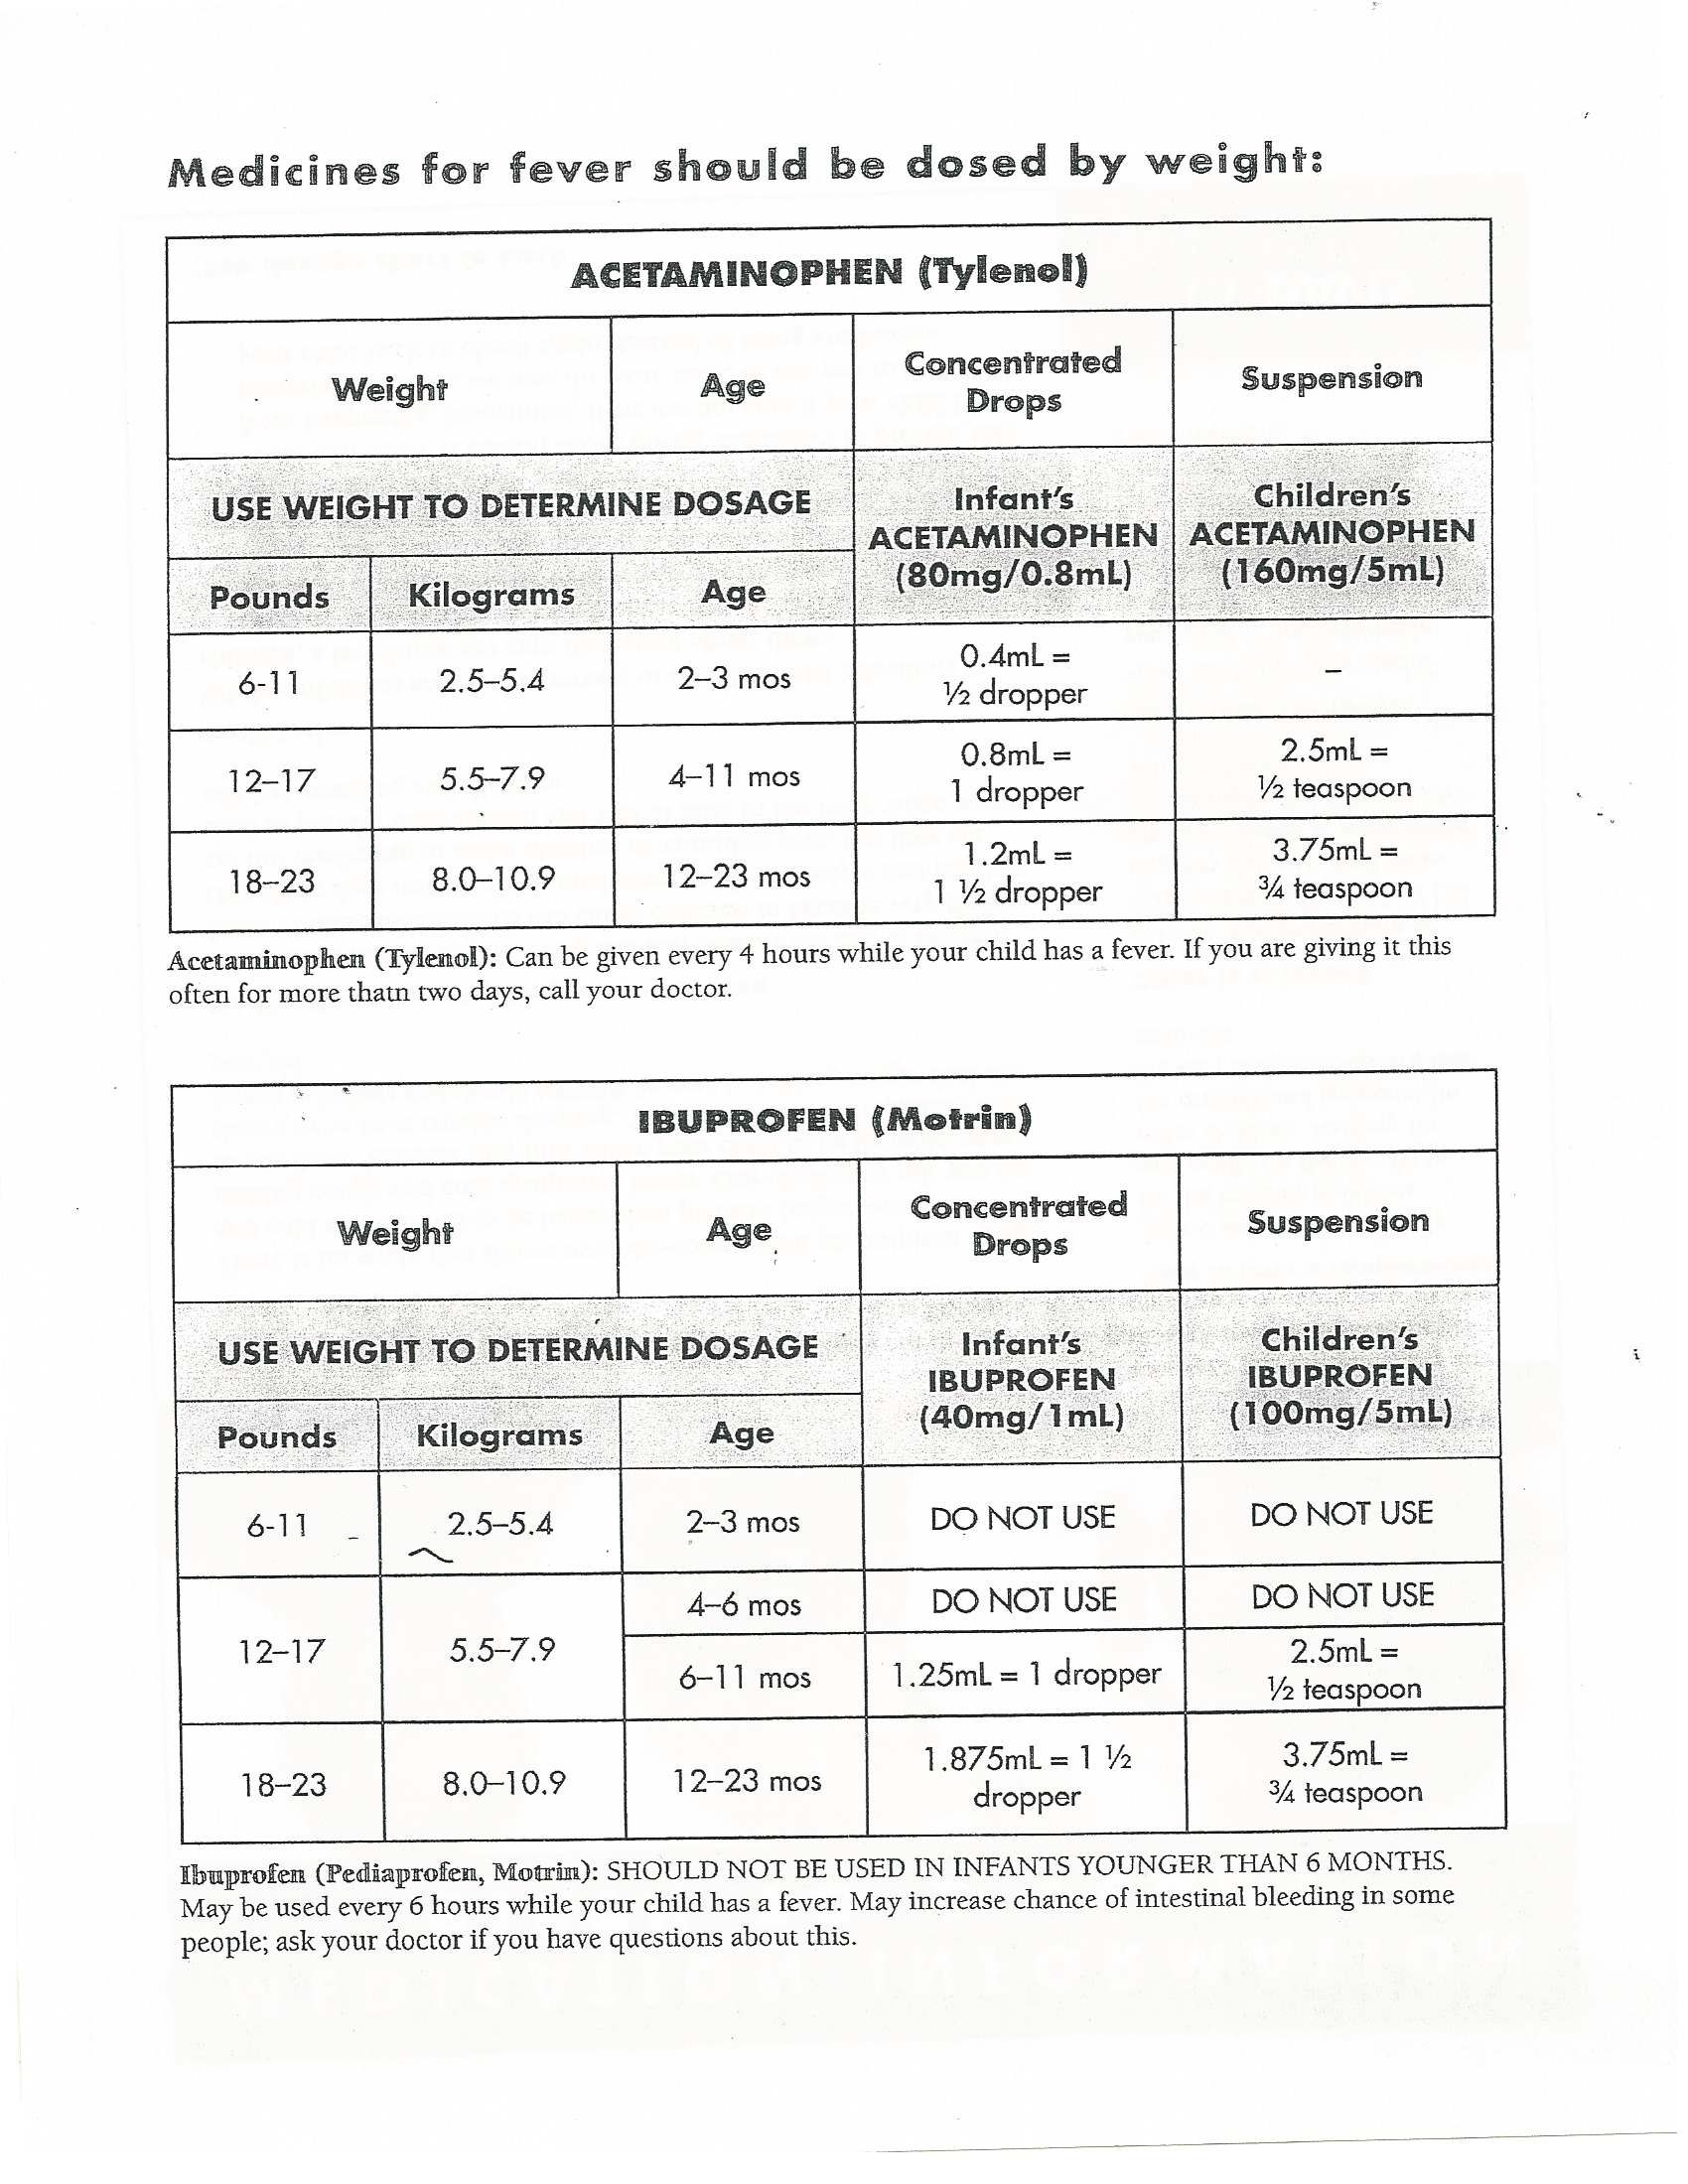 Medication dosage charts for ibuprofen and acetaminophen use medication dosage charts for ibuprofen and acetaminophen use based on childs weight and age nvjuhfo Choice Image